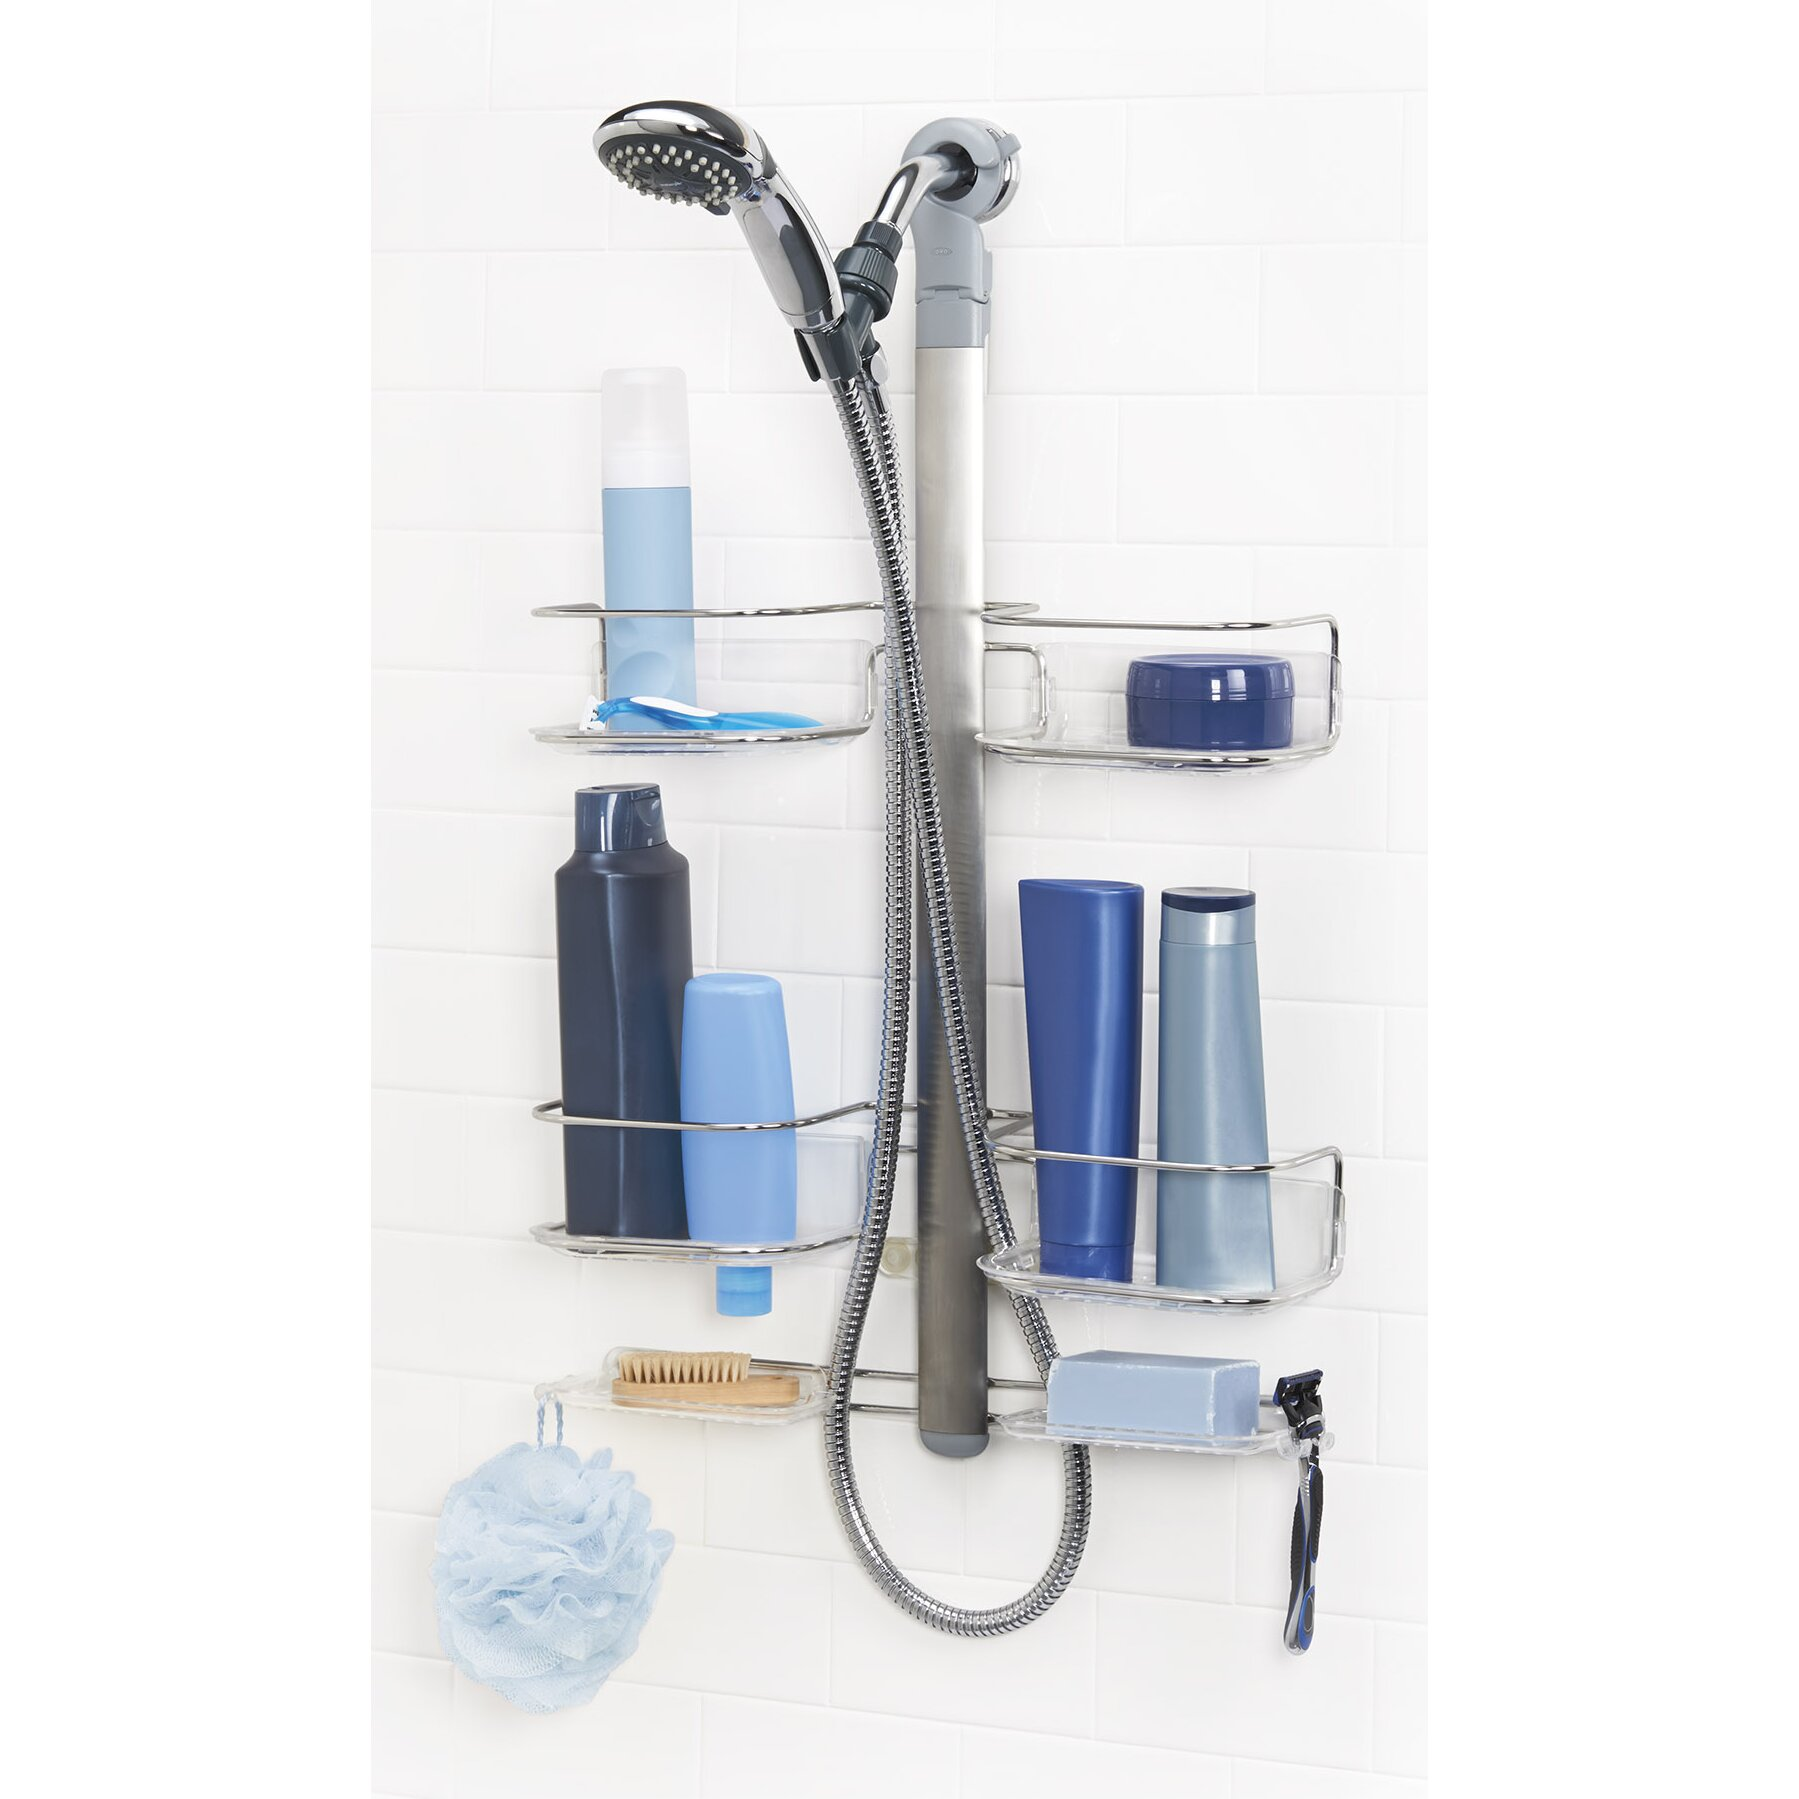 Oxo Grips Shower Caddy 28 Images Oxo Grips Stainless Steel Wall Mounted 3 Tier Shower Oxo